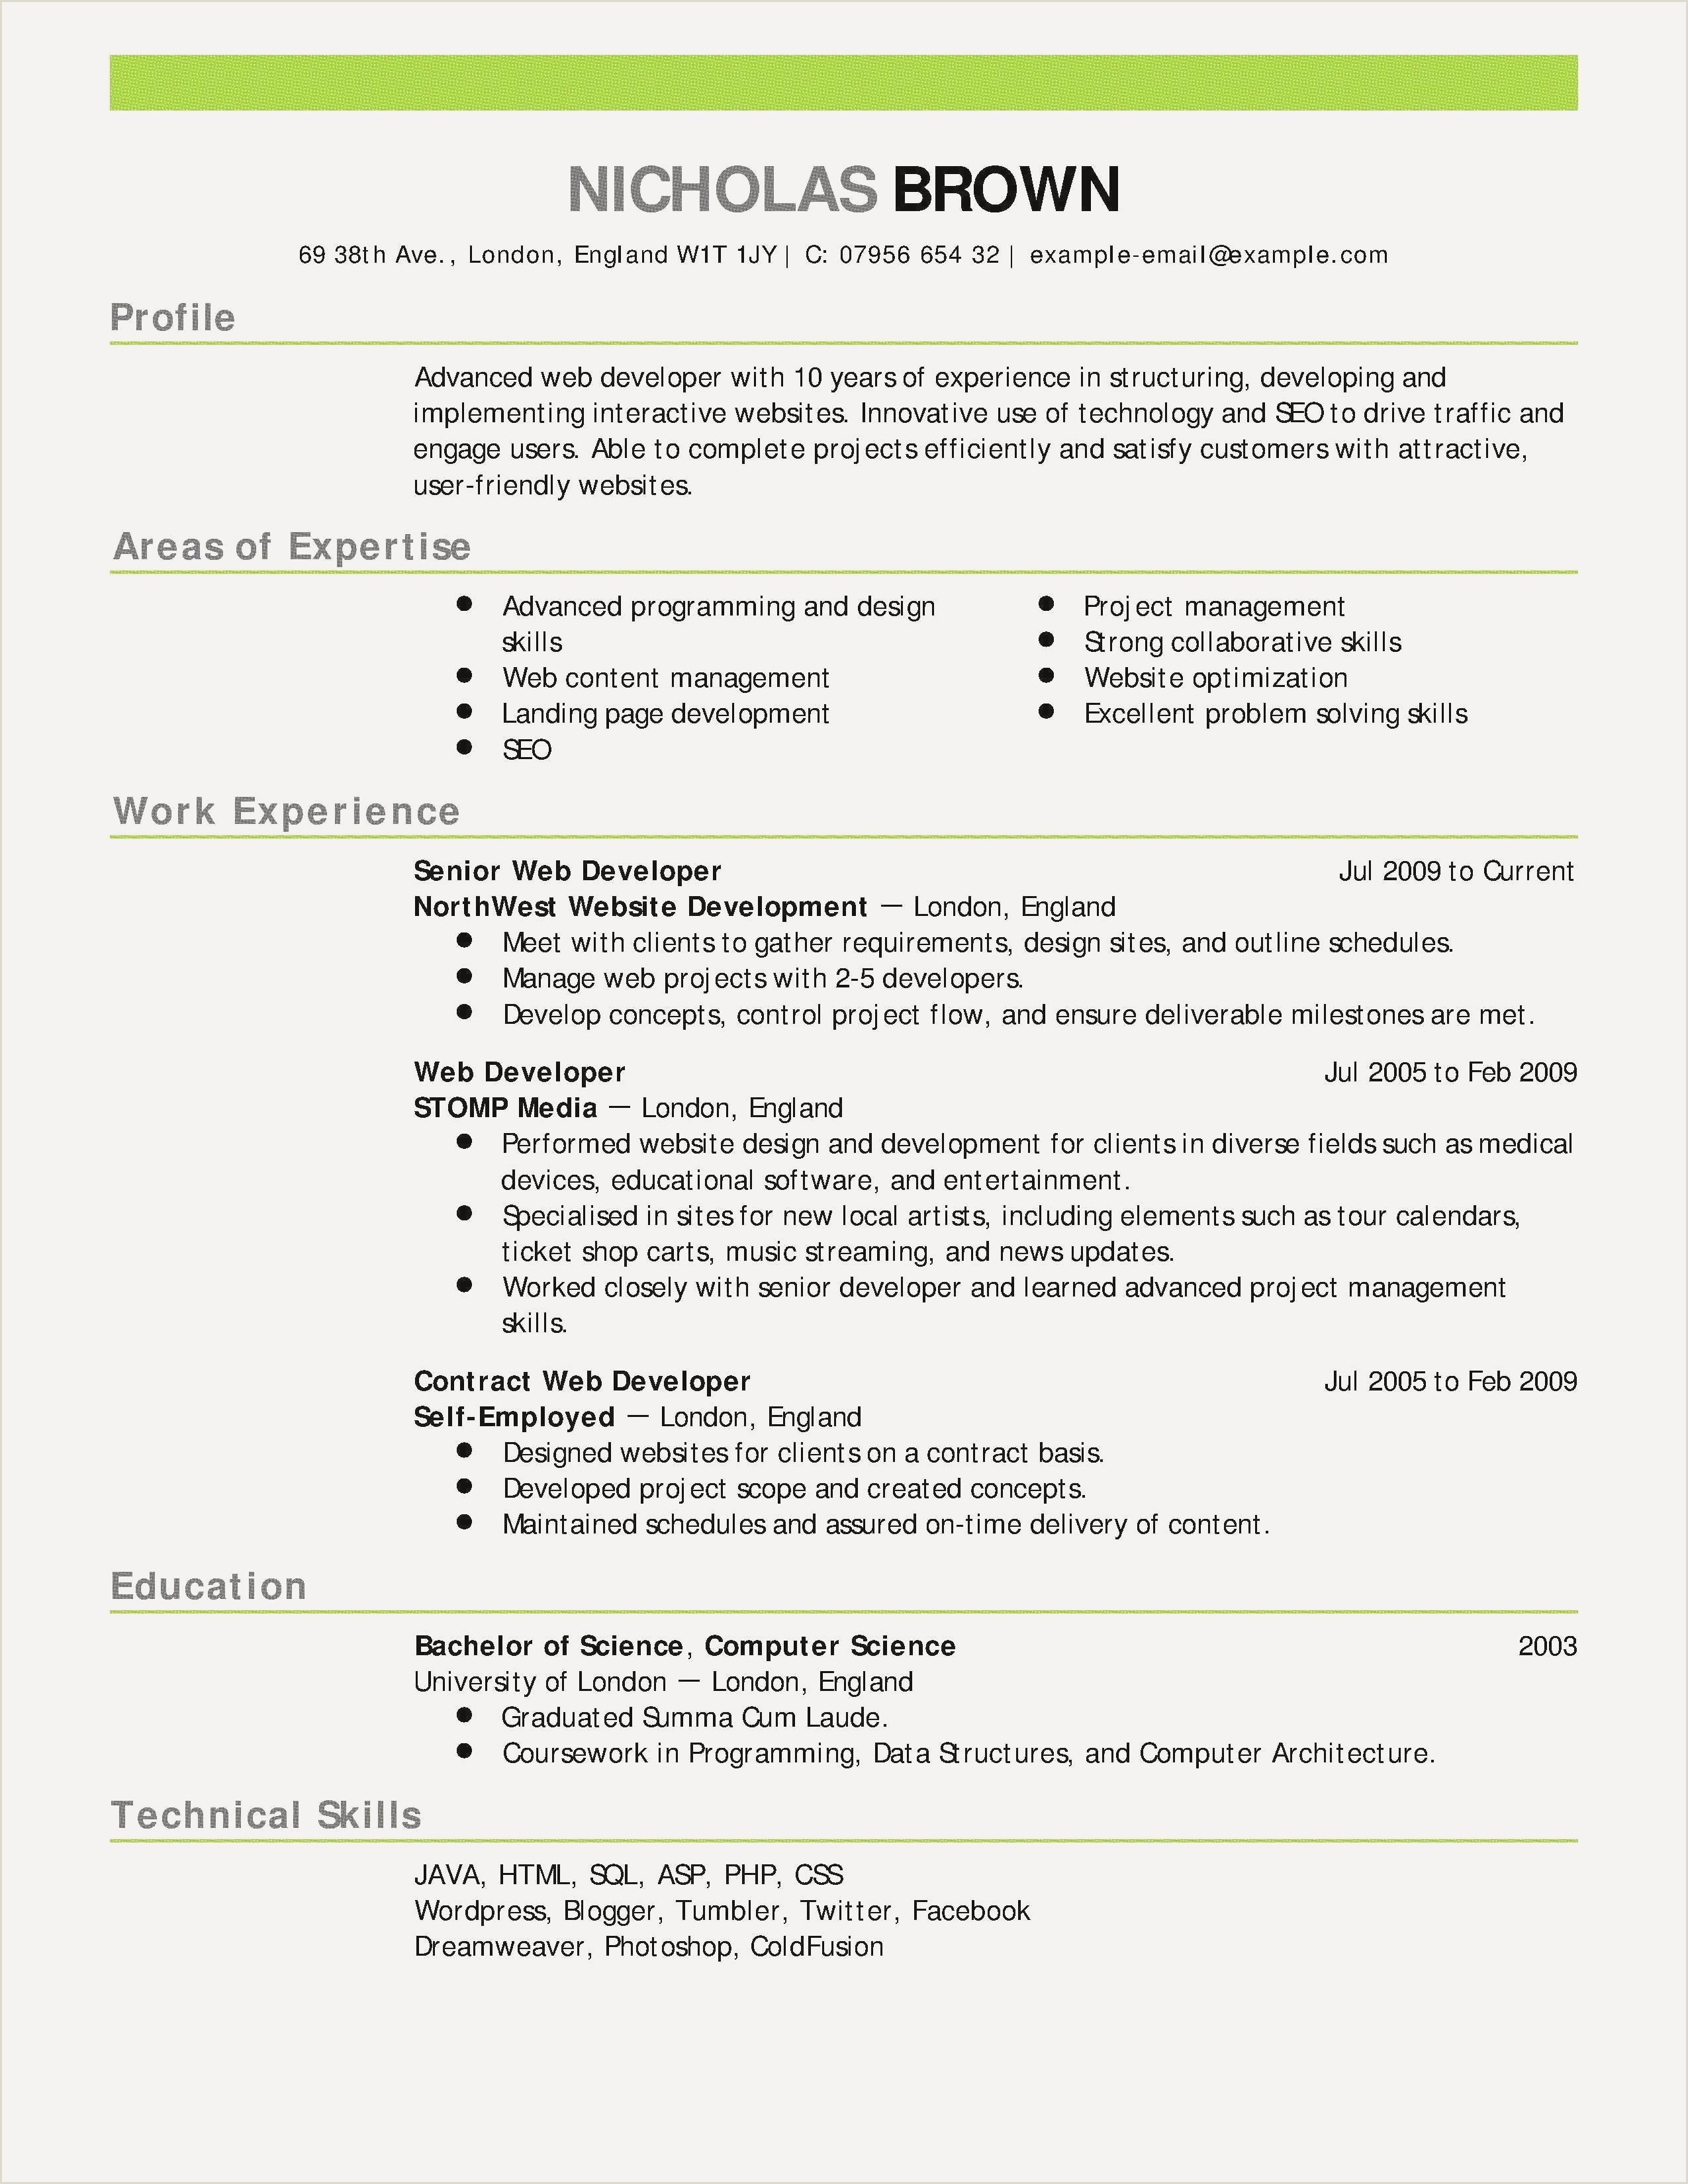 Cv format for Sales Job Sales Cover Letter Uk Awesome Examples Sales Resumes Lovely